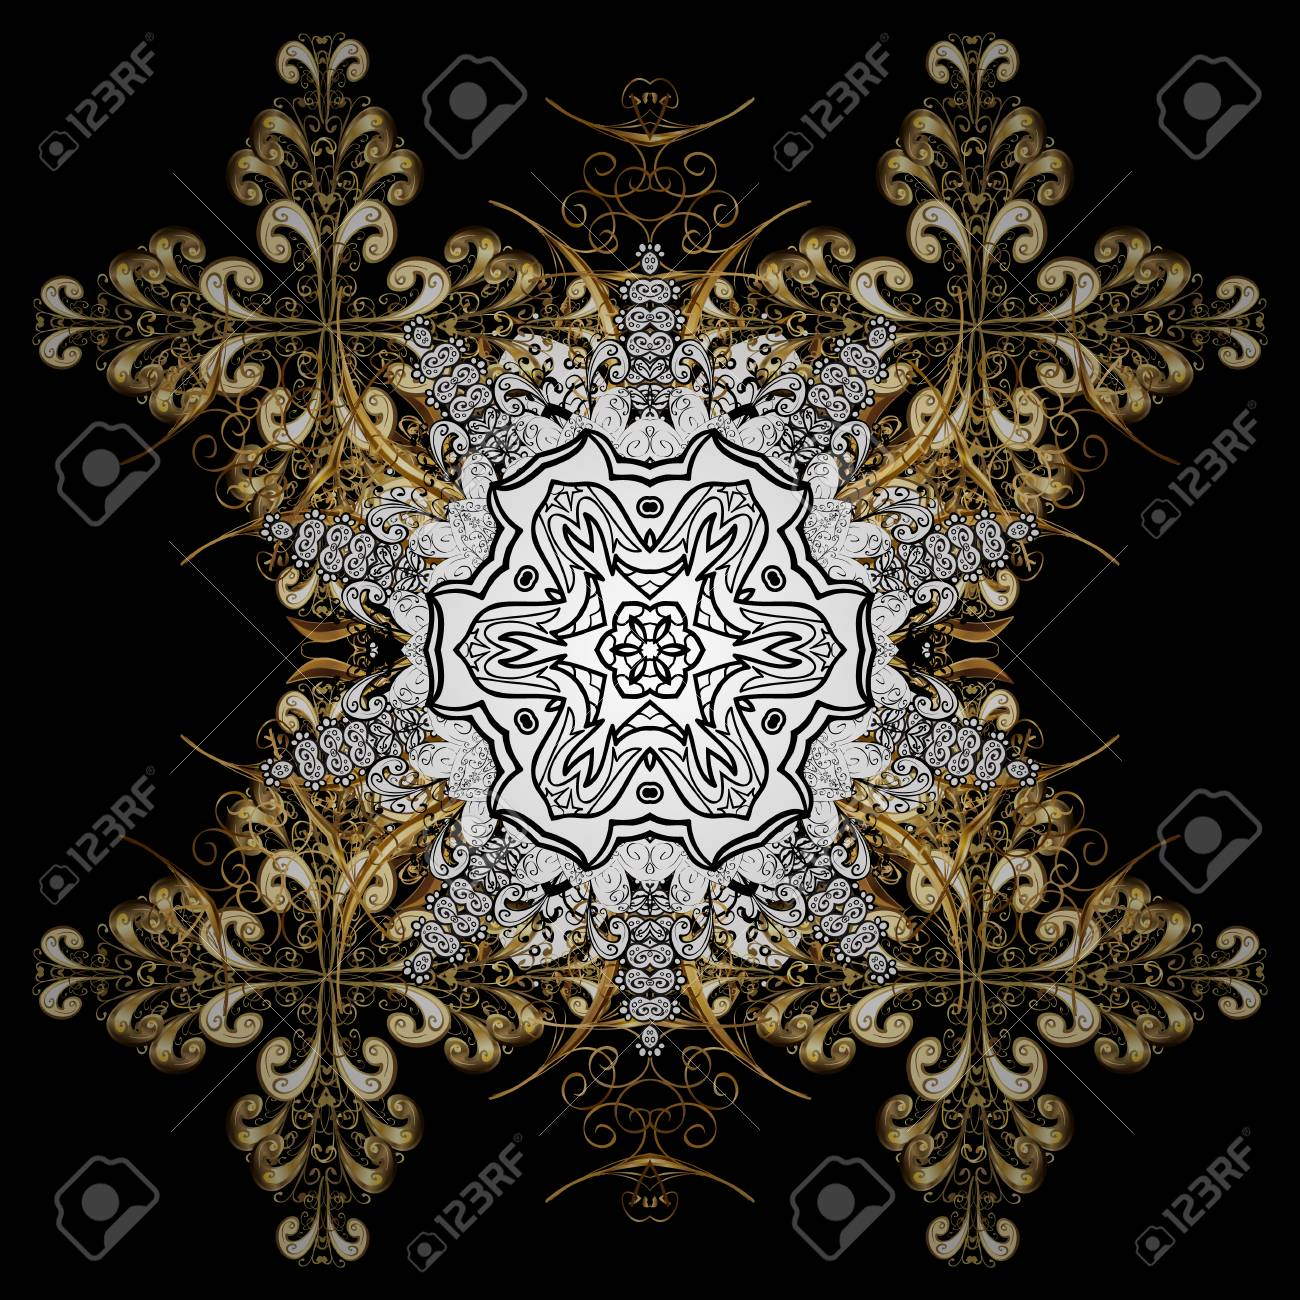 Medieval floral royal pattern decorative symmetry arabesque medieval floral royal pattern decorative symmetry arabesque gold on black background good for stopboris Choice Image